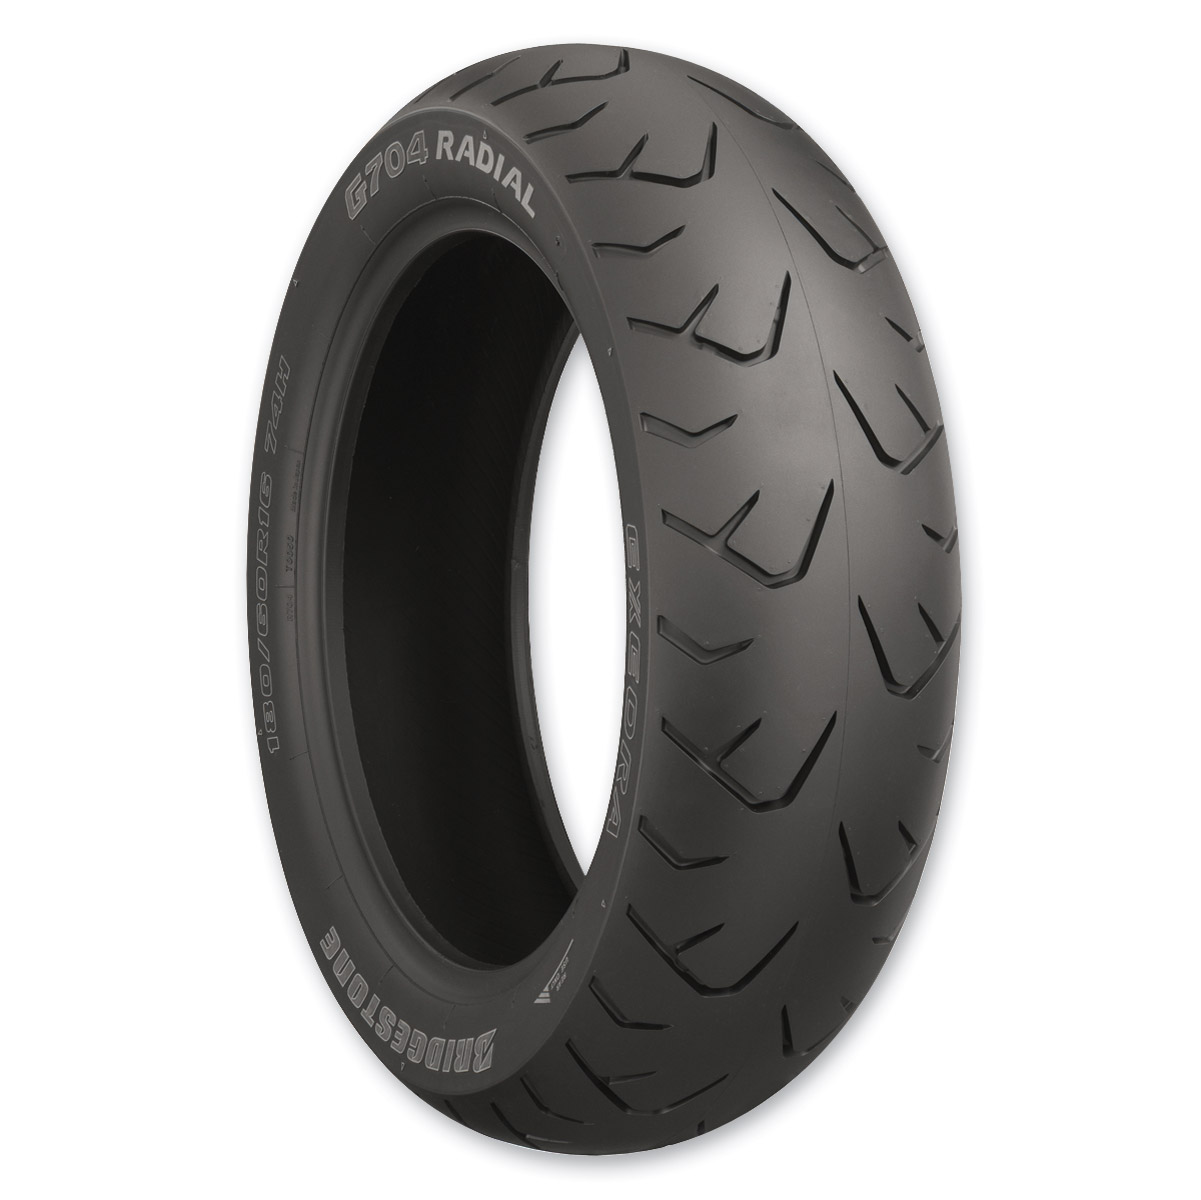 Get it delivered to your door - BRIDGESTONE G704 EXEDRA TOURING REAR TIRE - 4495 (EGP)